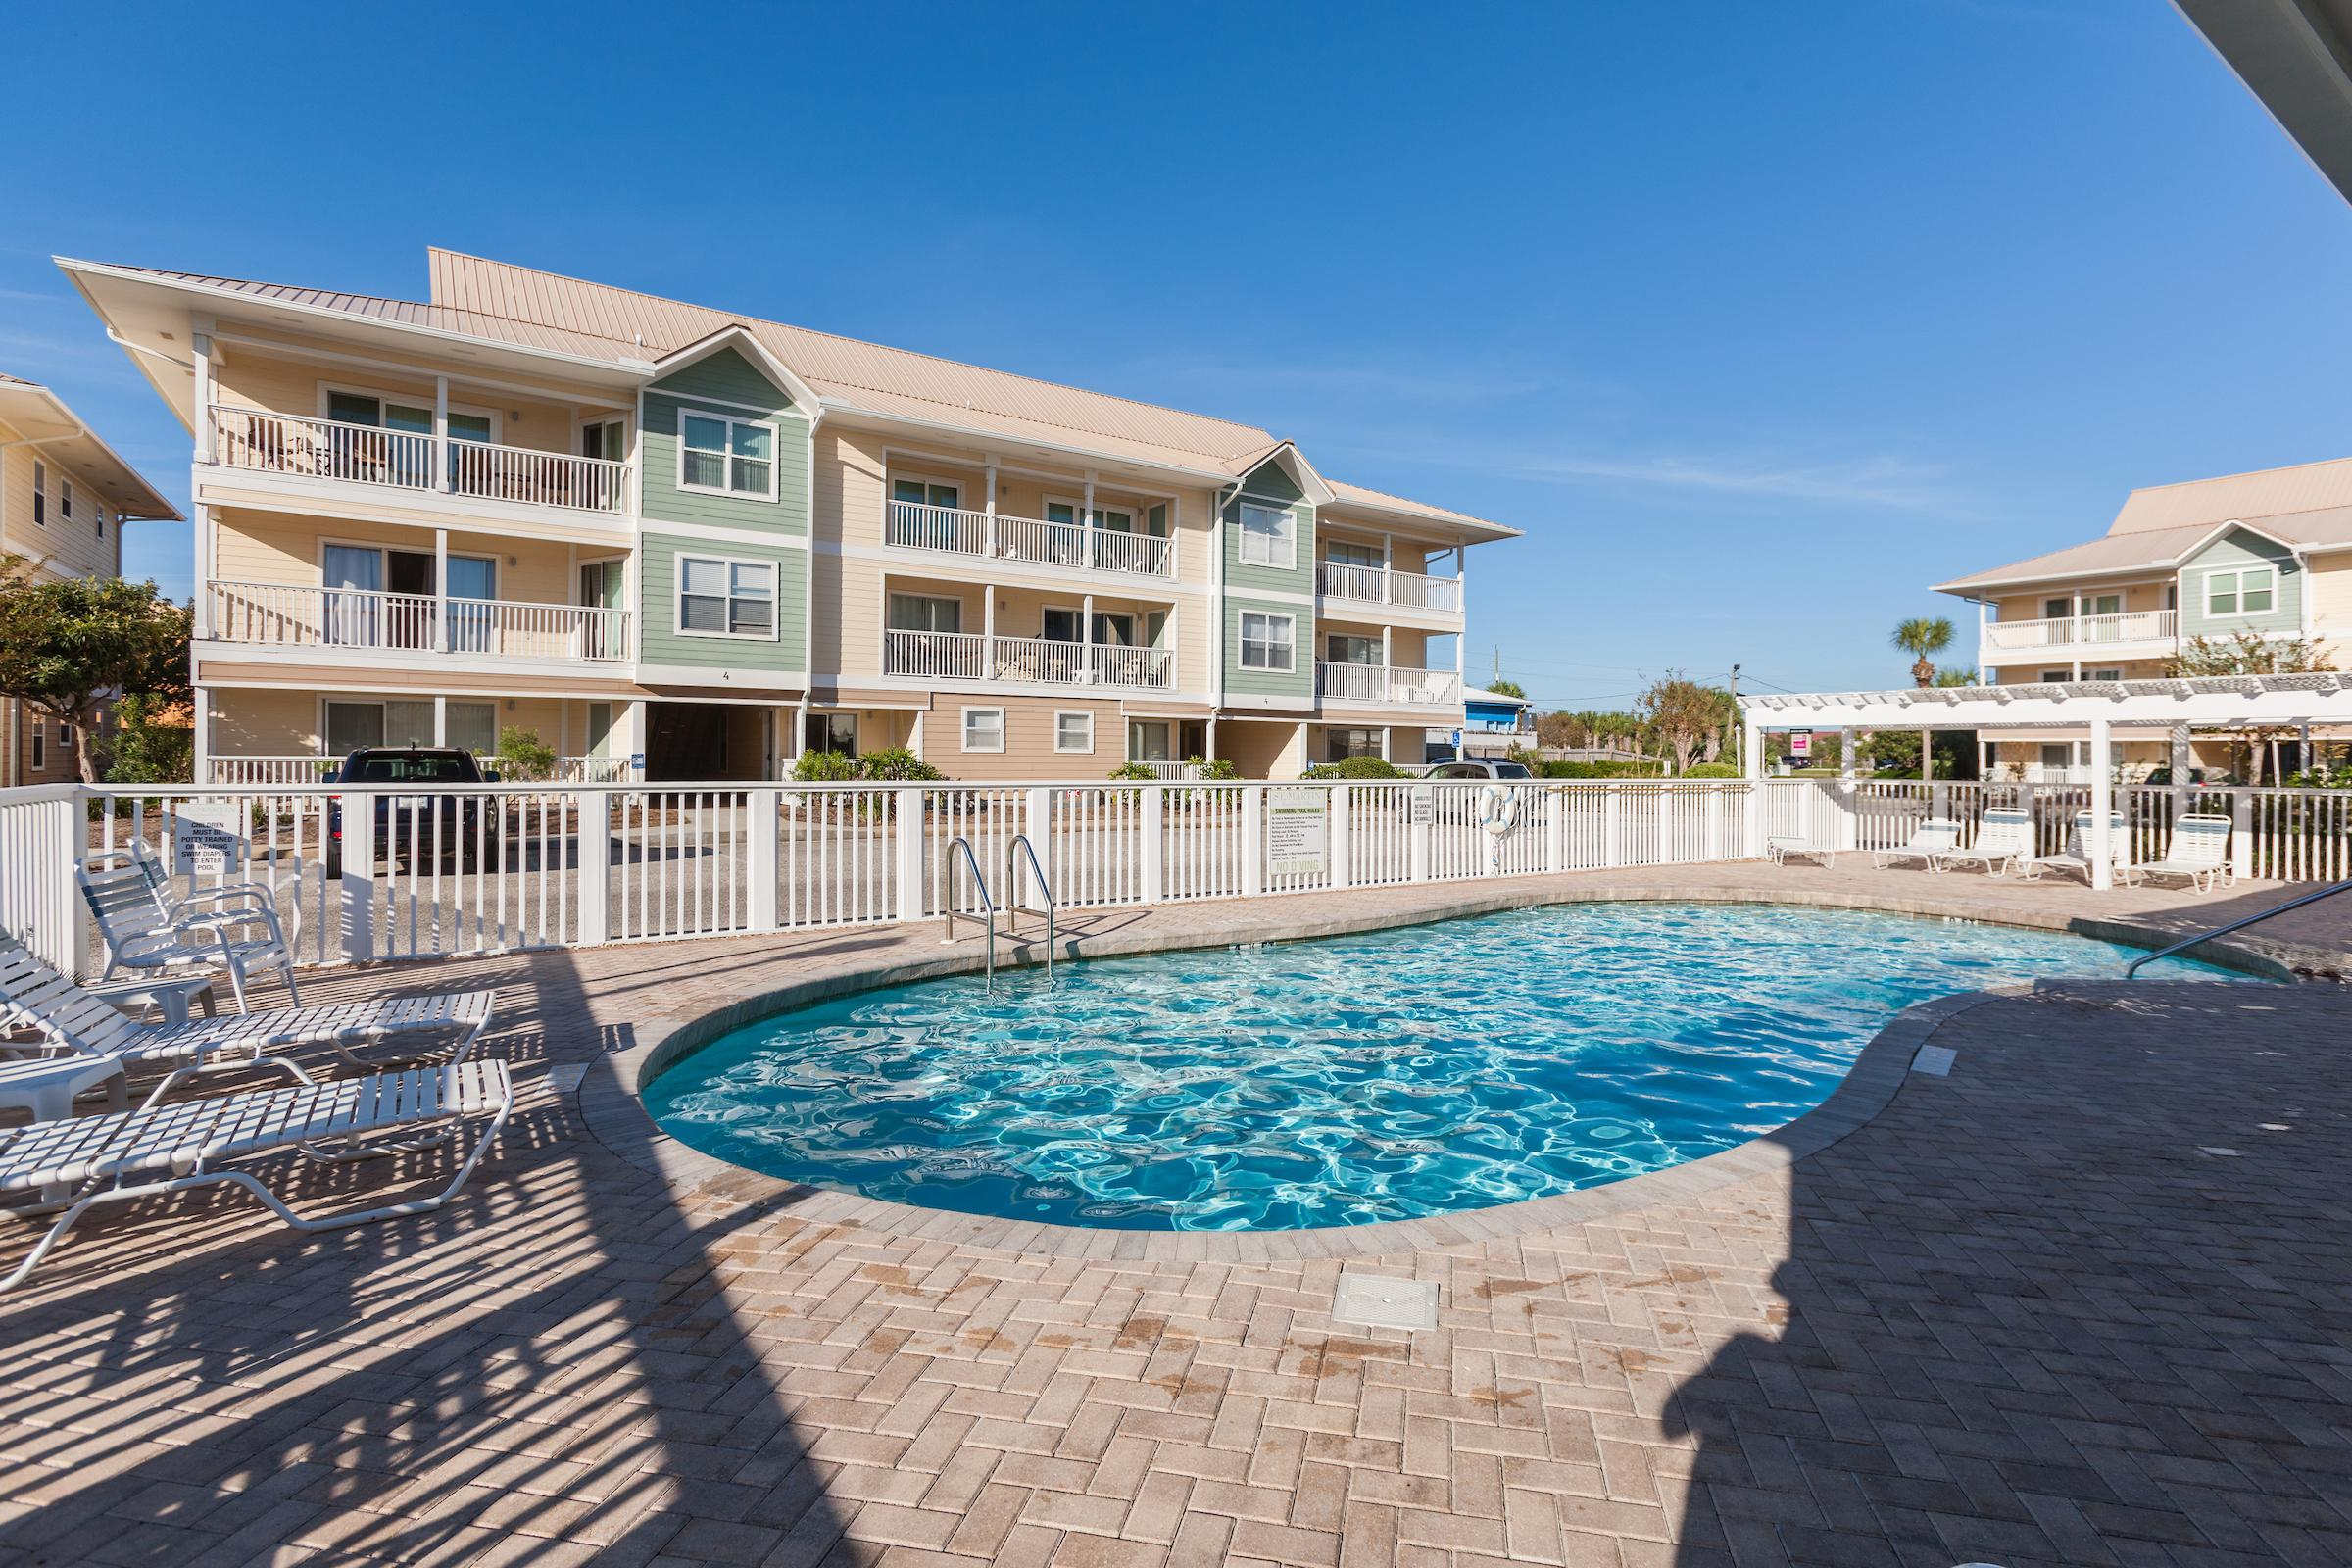 Soak up the sun beside the shared complex pool.